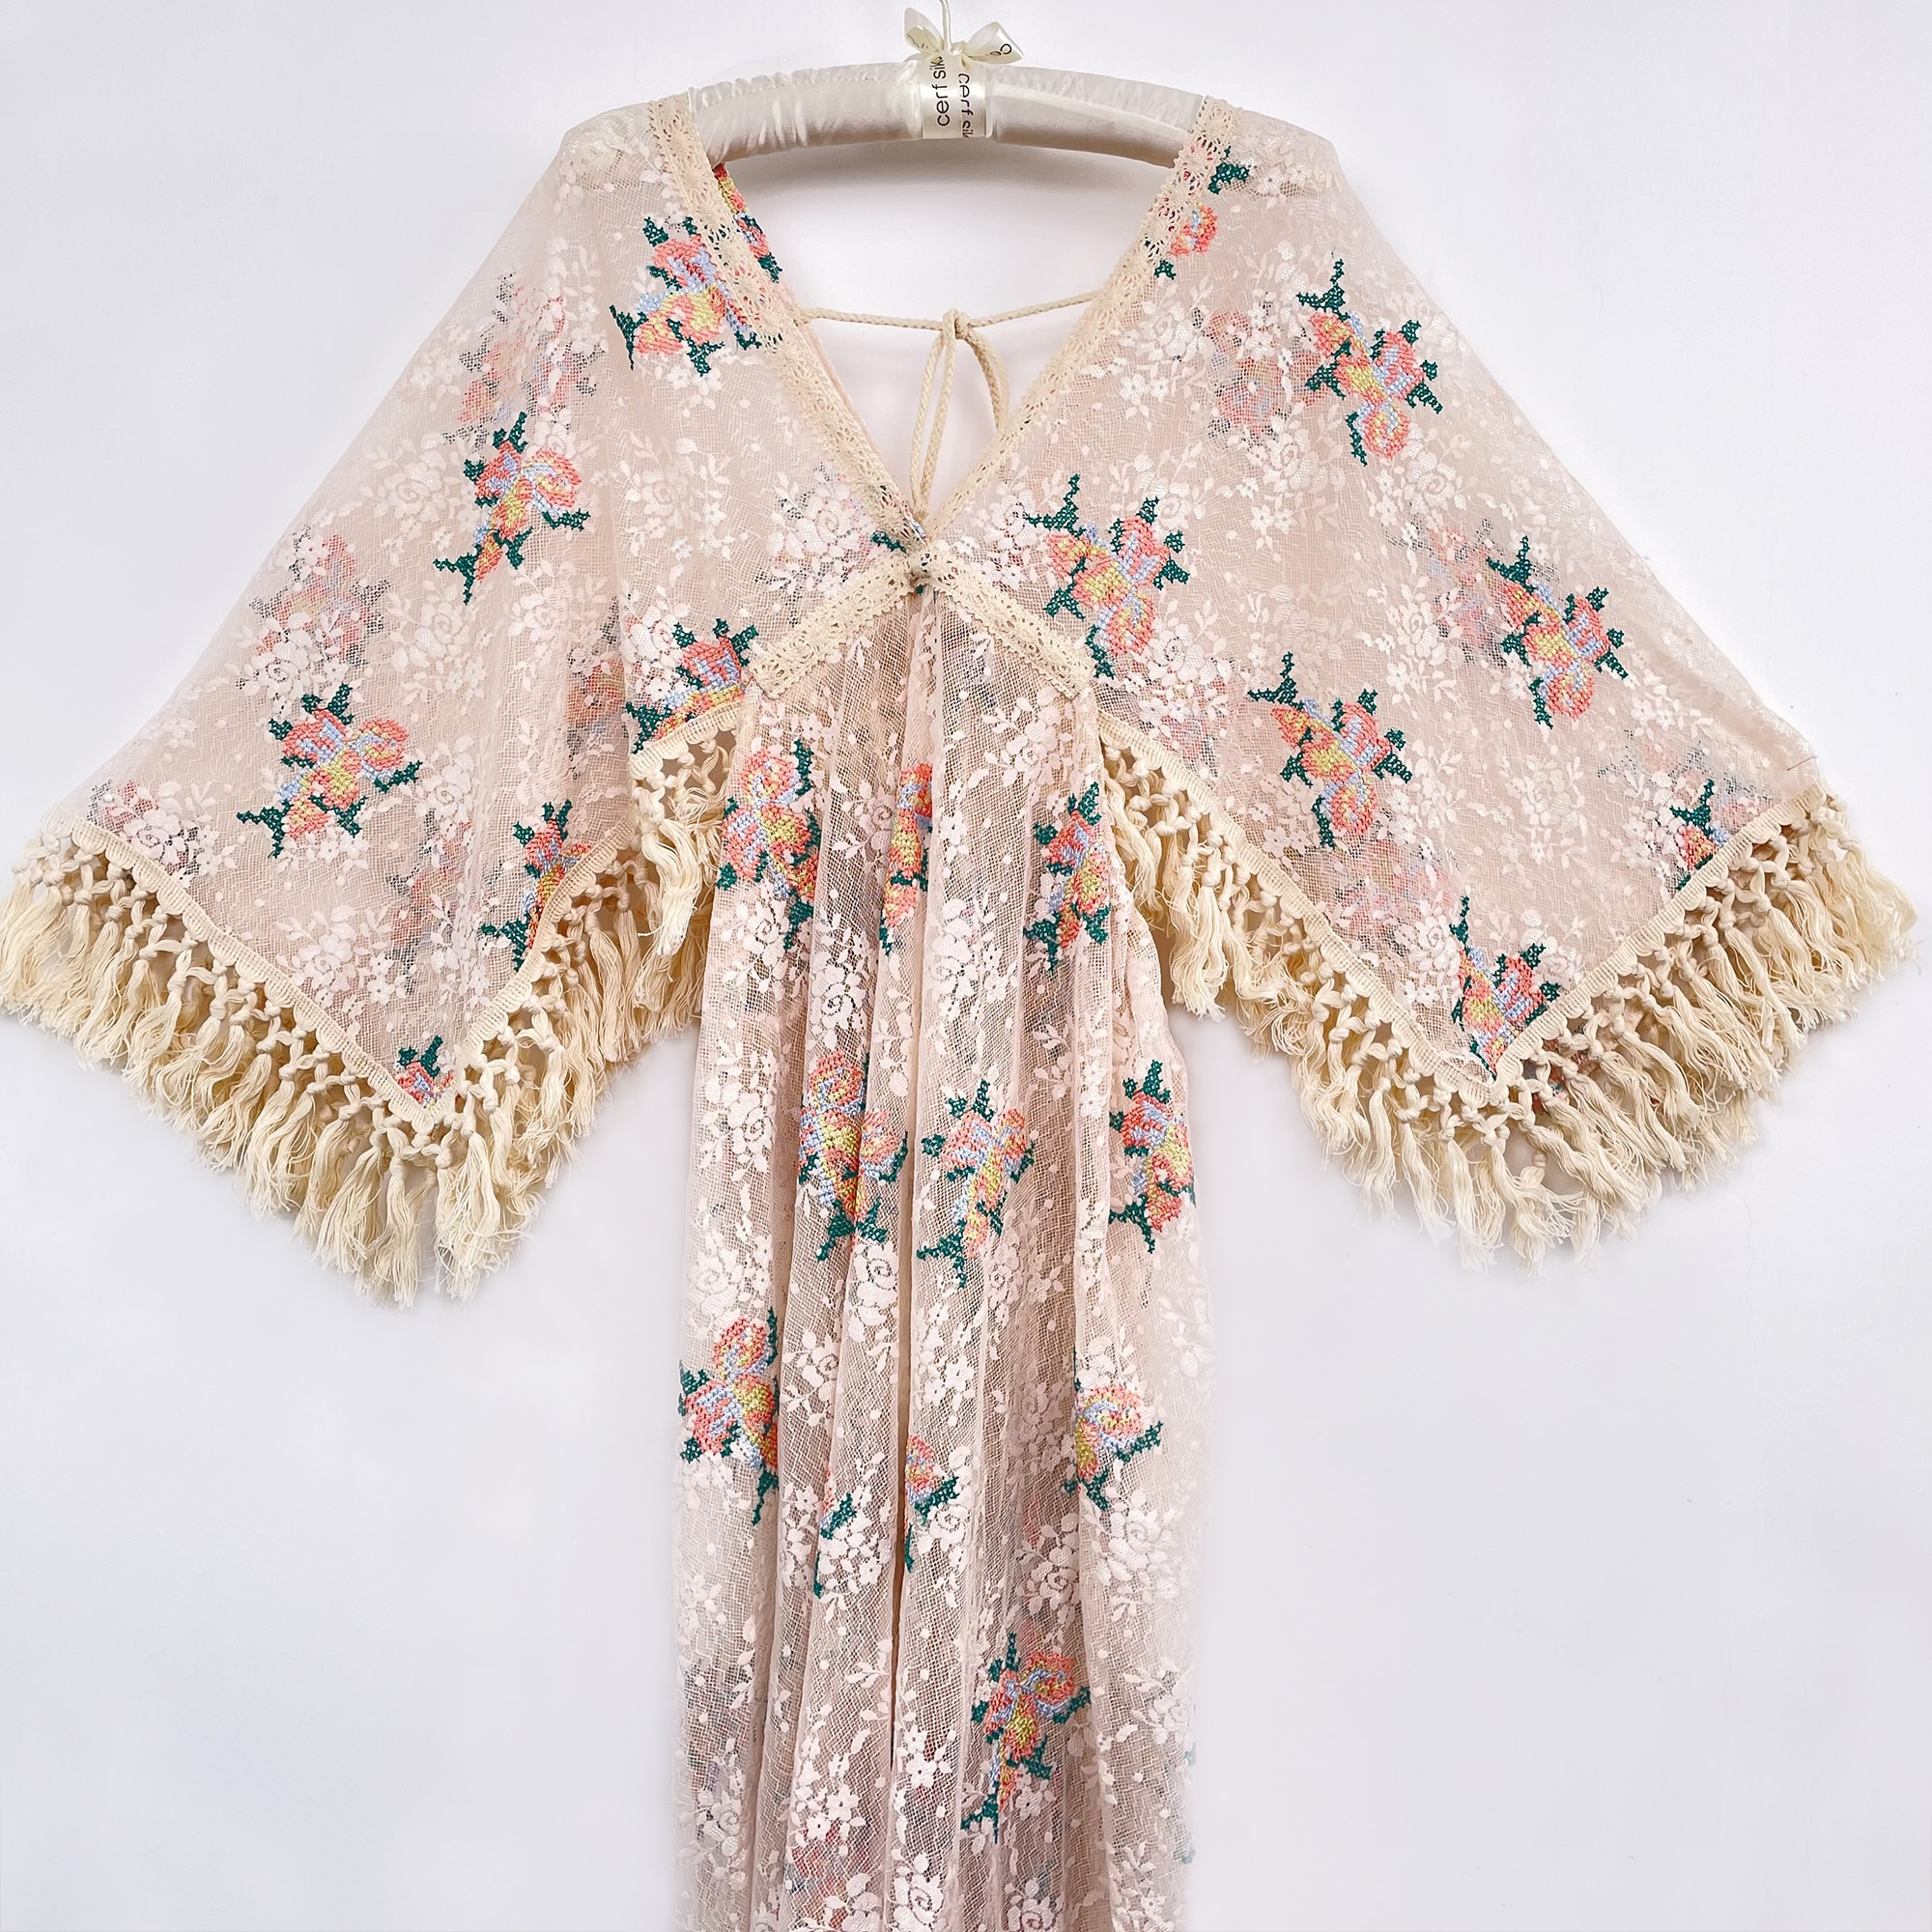 A Set Boho Lace Photo Shoot Maternity Mom and Girl Dresses with Tassels Evening Party Costume for Photography Accessories enlarge